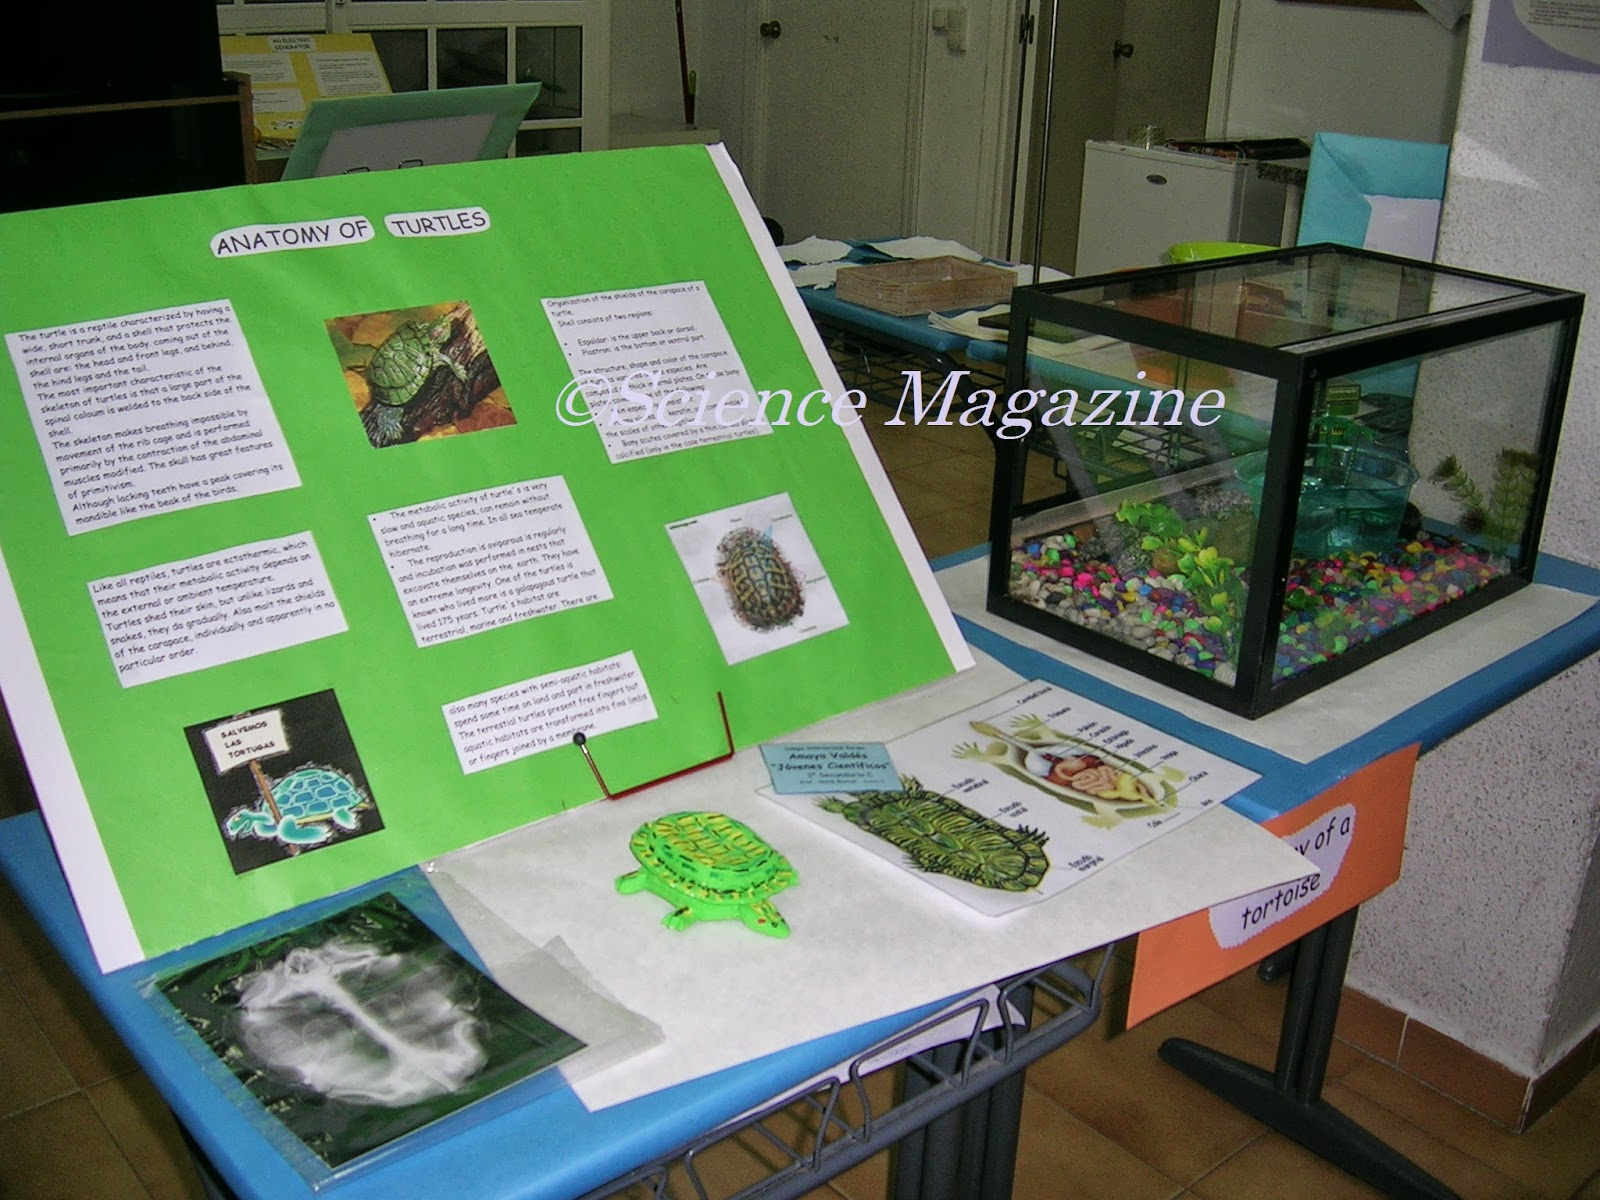 science magazine science fair project turtles by a a vald eacute s stand ready for the science fair